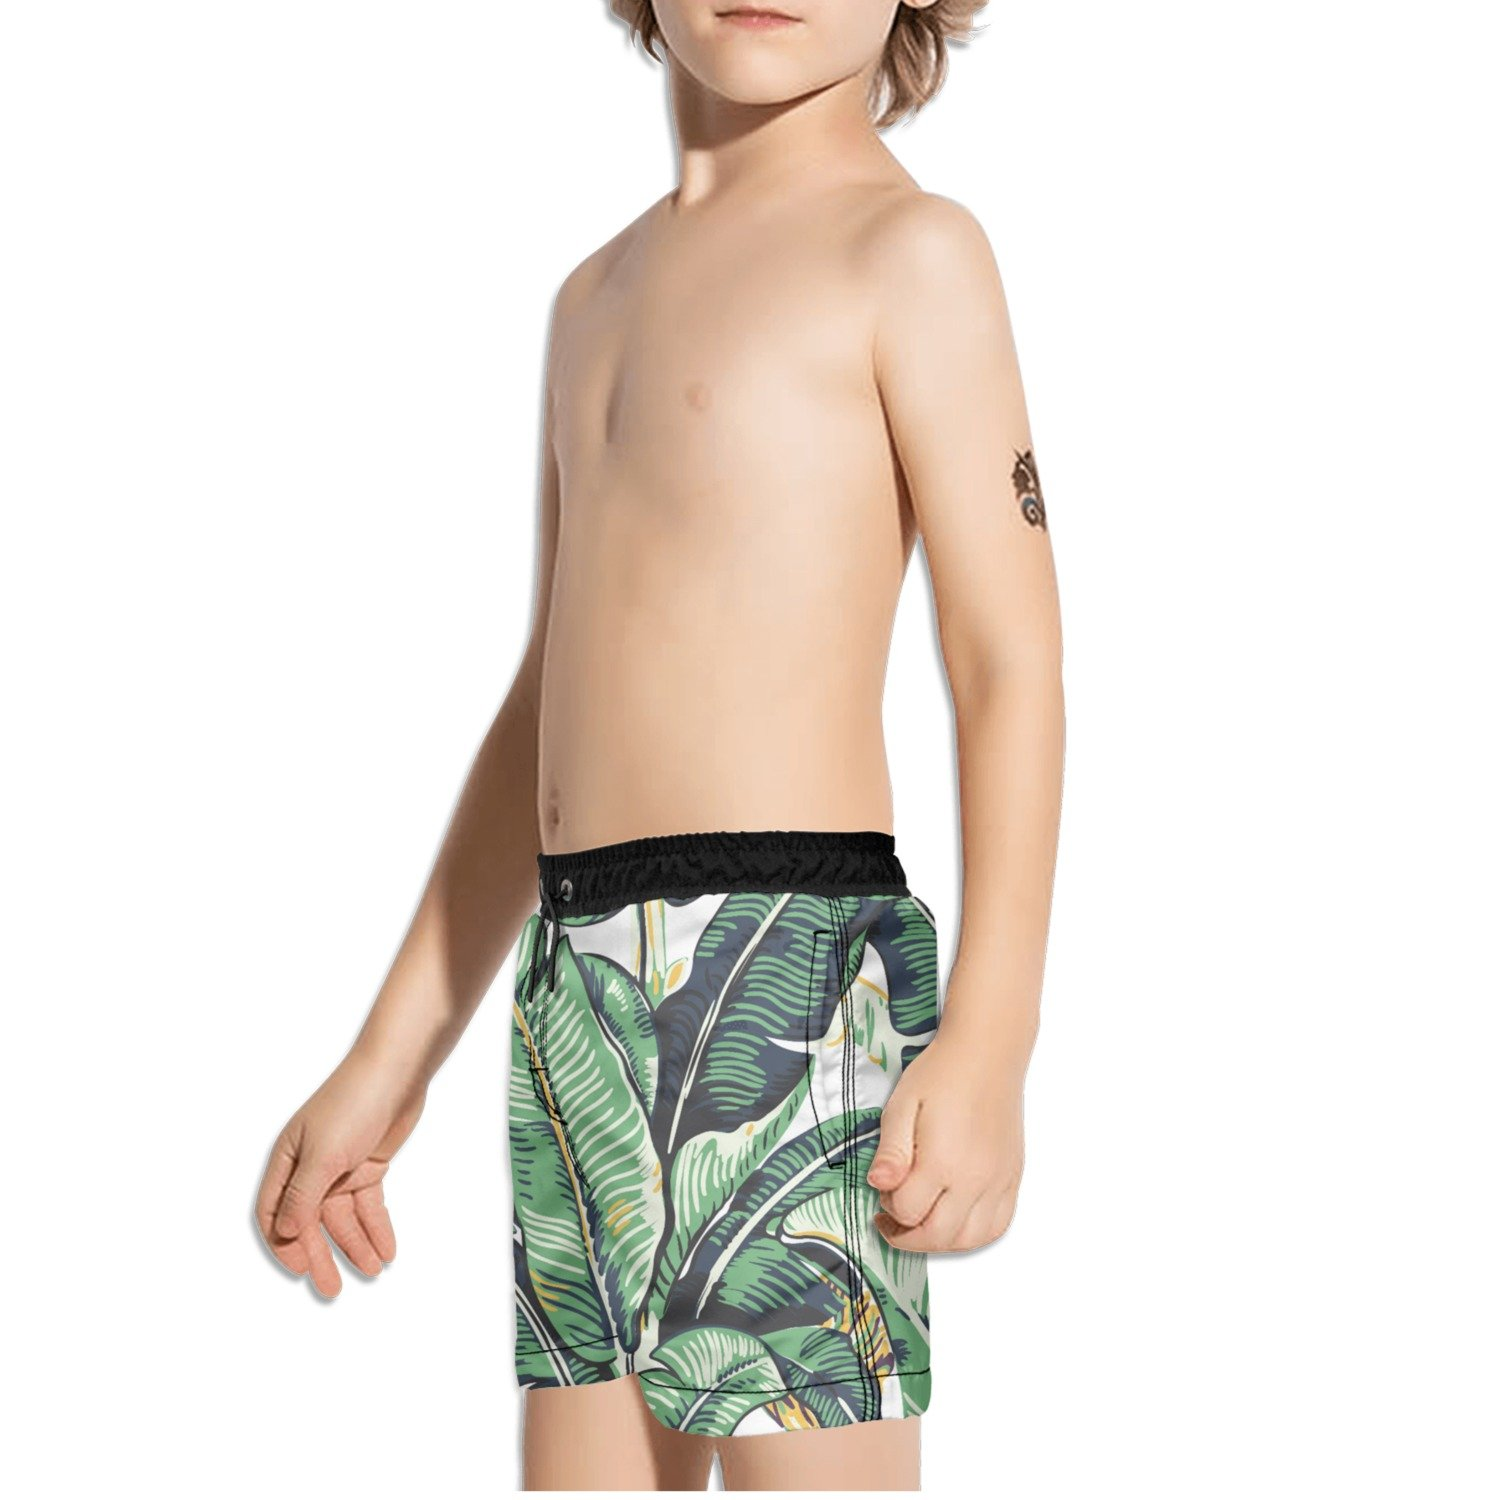 FullBo Banana Leaves Little Boys Short Swim Trunks Quick Dry Beach Shorts